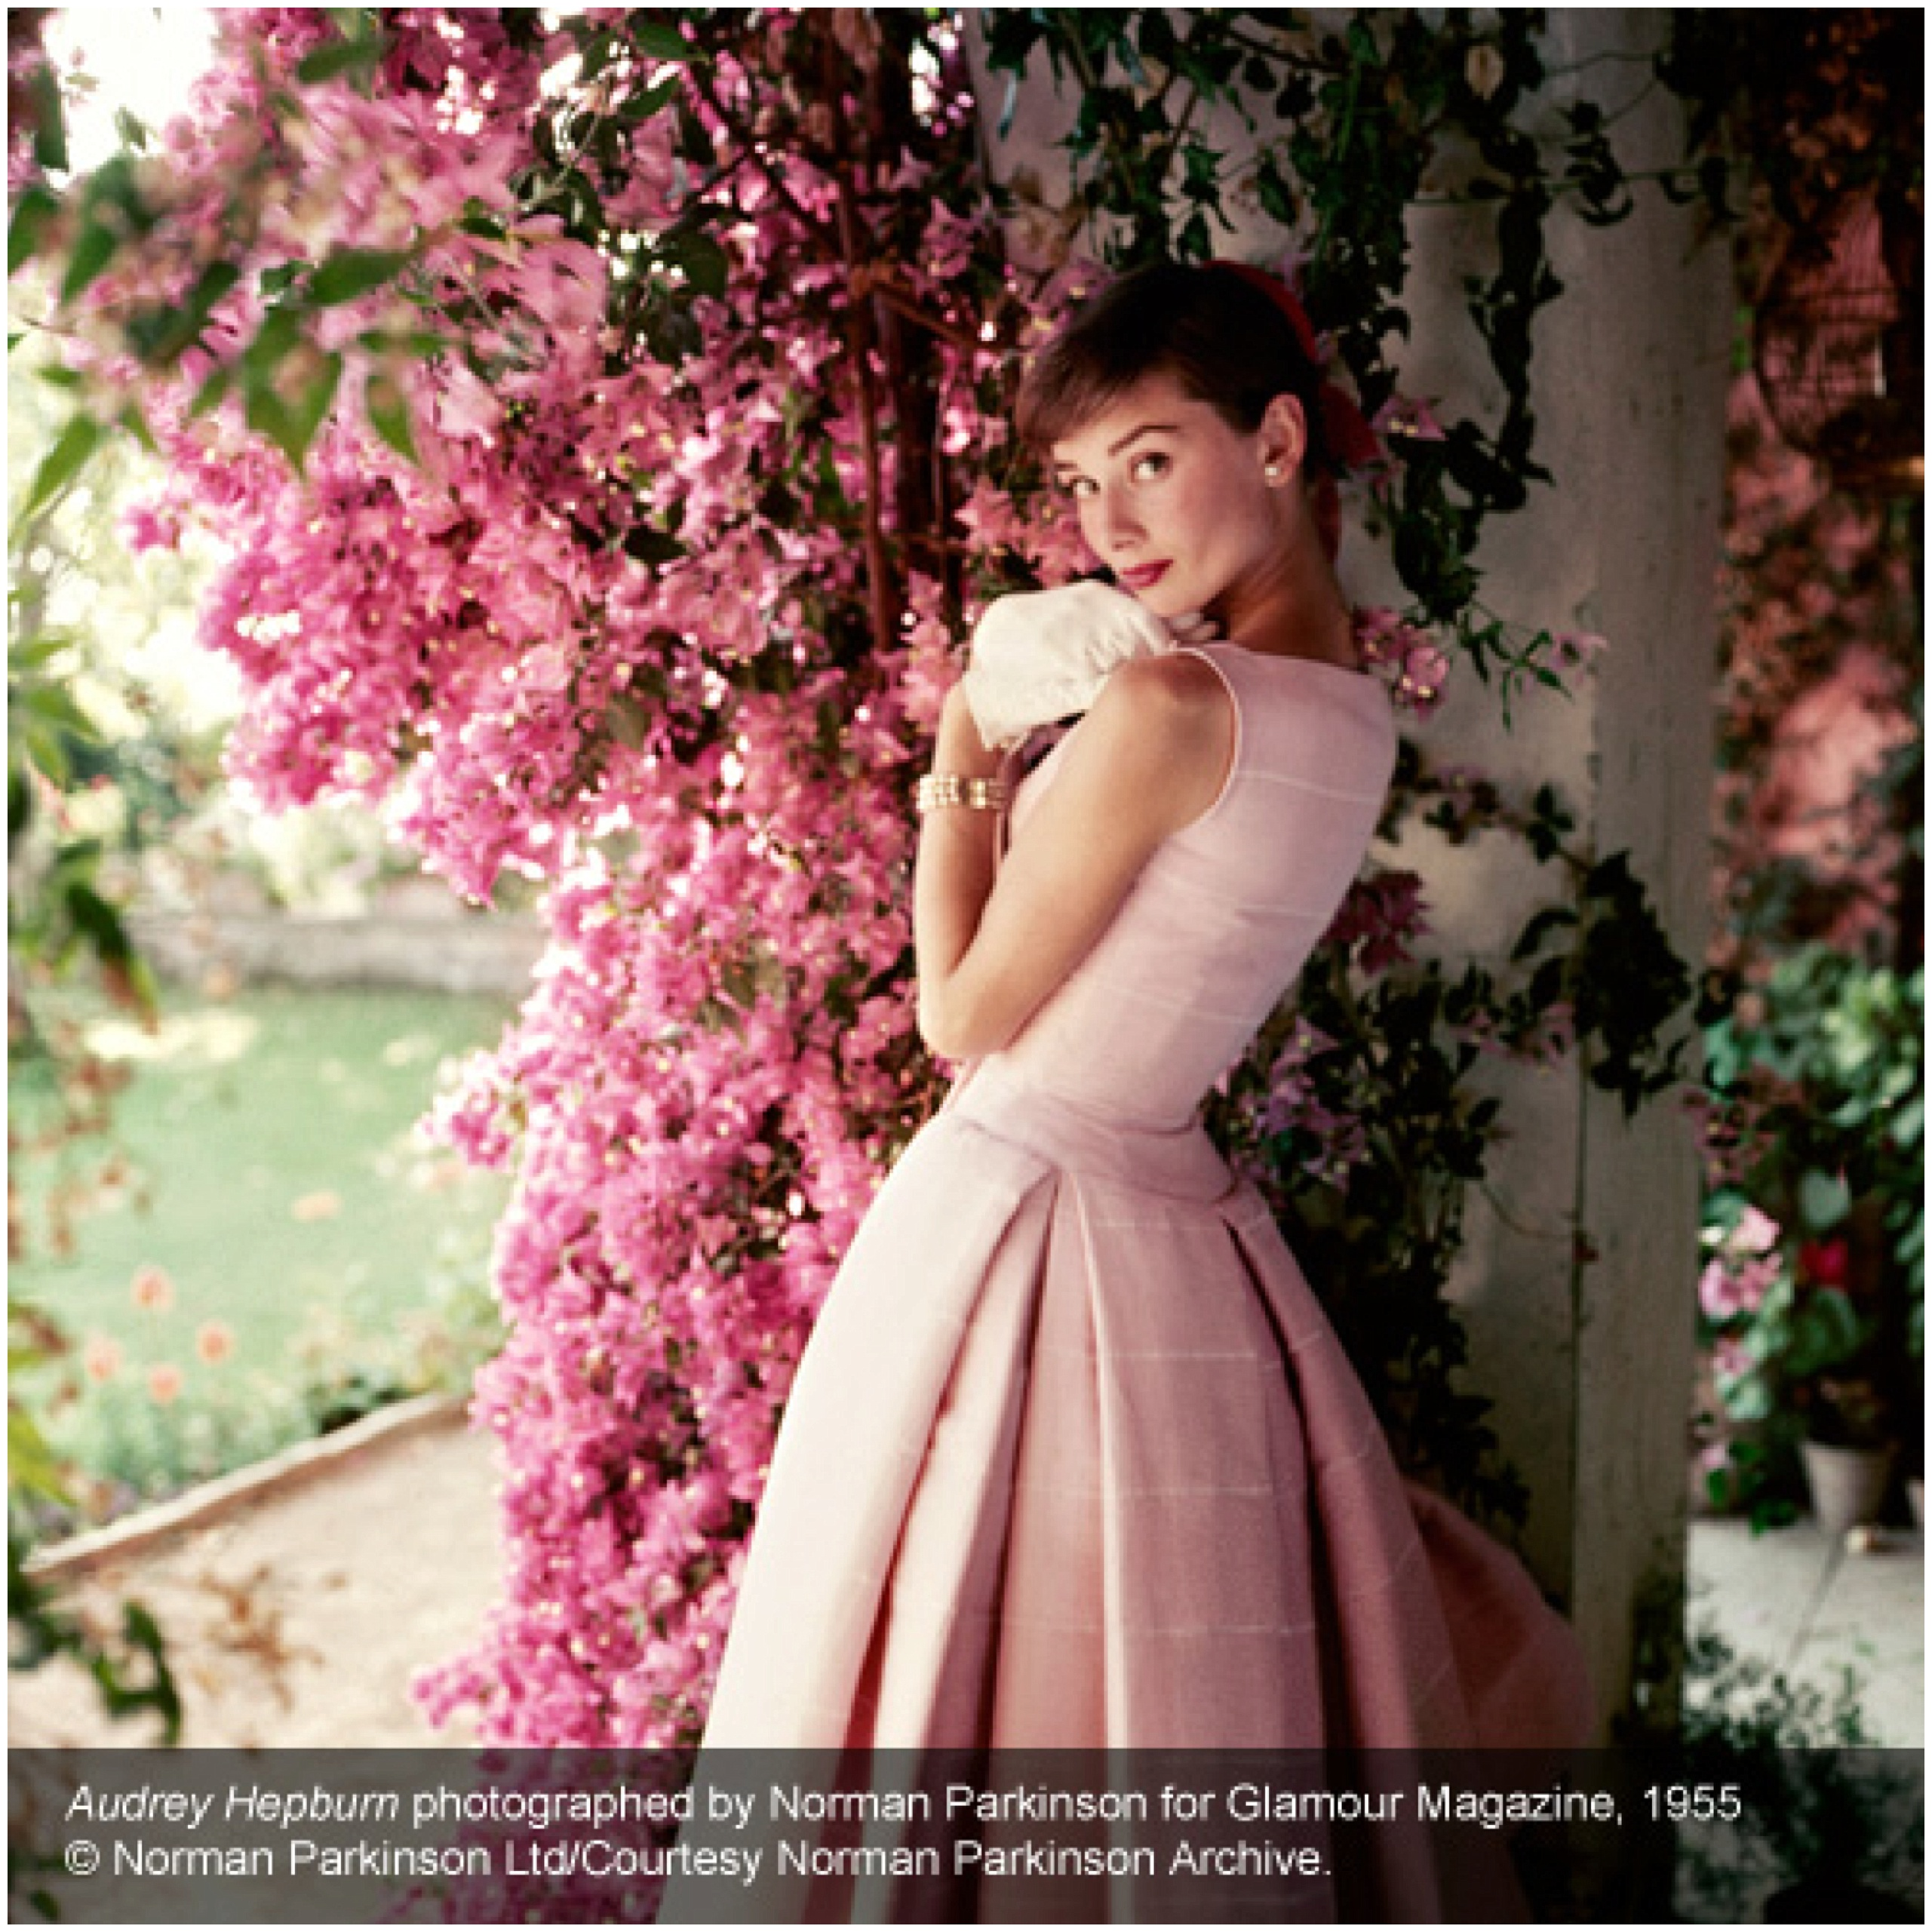 Audrey Hepburn: Portraits of an Icon at the National Gallery